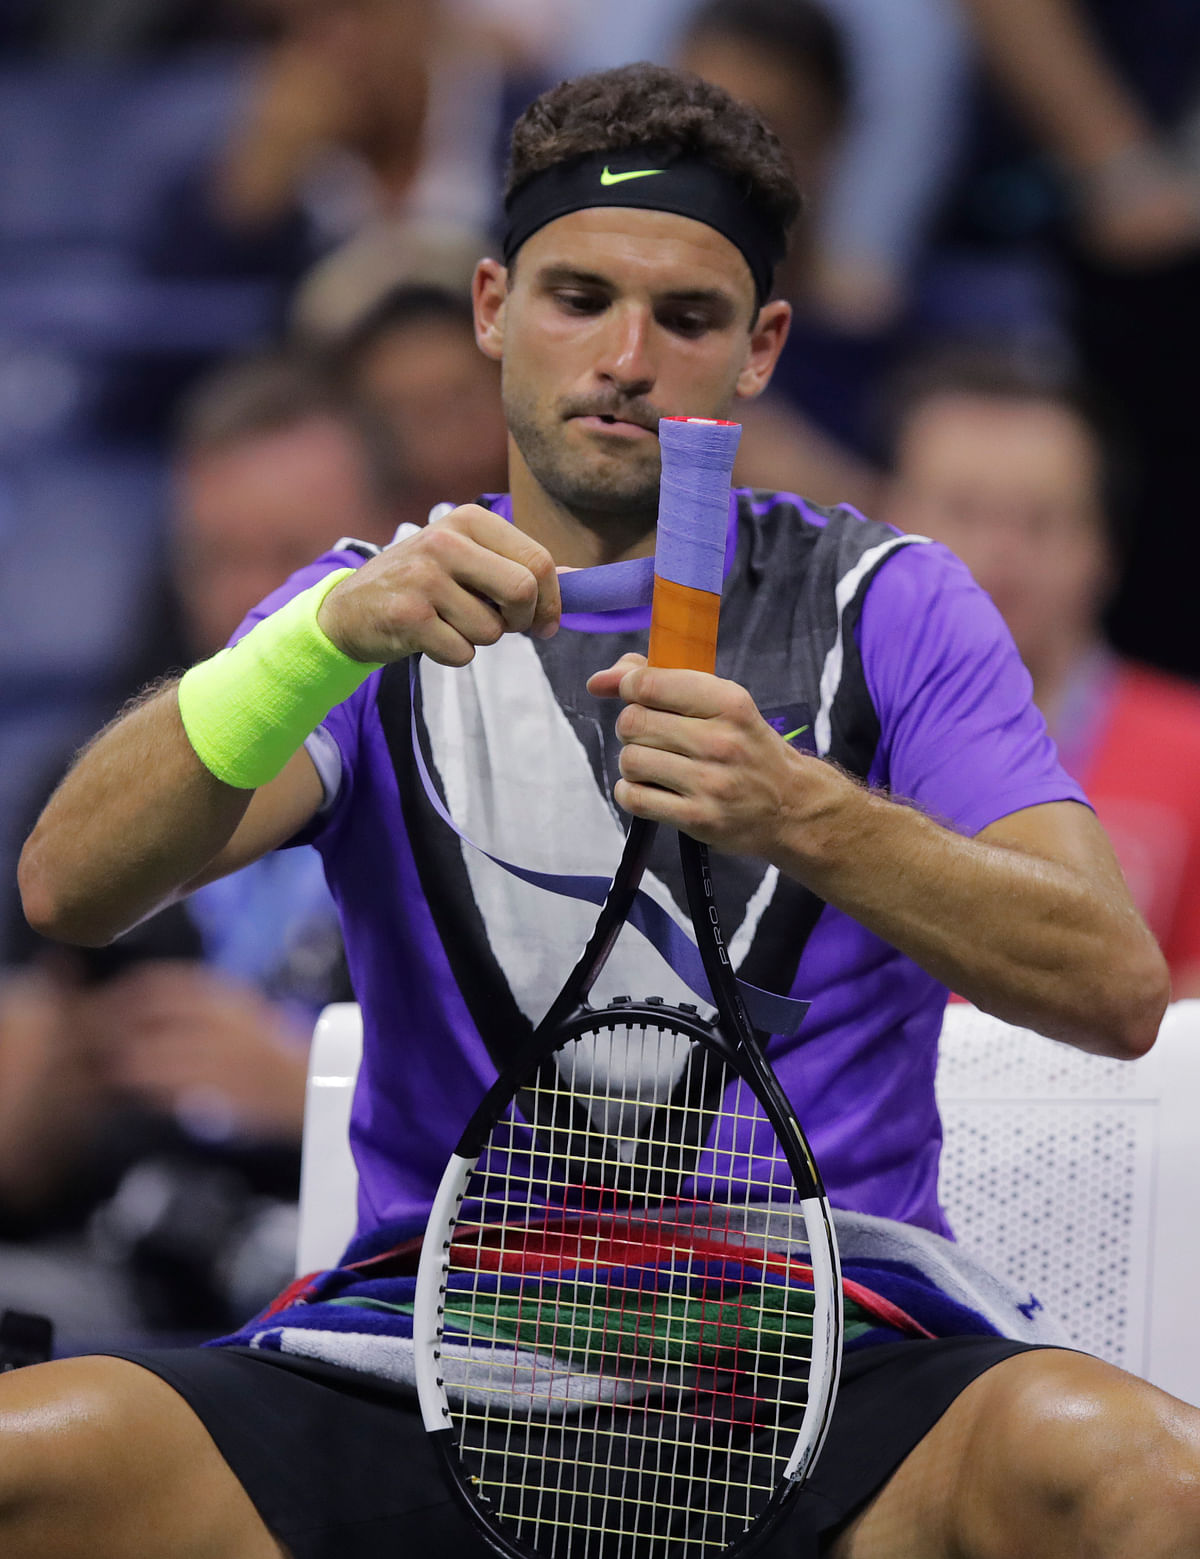 Grigor Dimitrov, of Bulgaria, tapes his racket grip before facing Roger Federer, of Switzerland, in the fifth set during the quarterfinals of the U.S. Open tennis tournament Tuesday, Sept. 3, 2019, in New York.